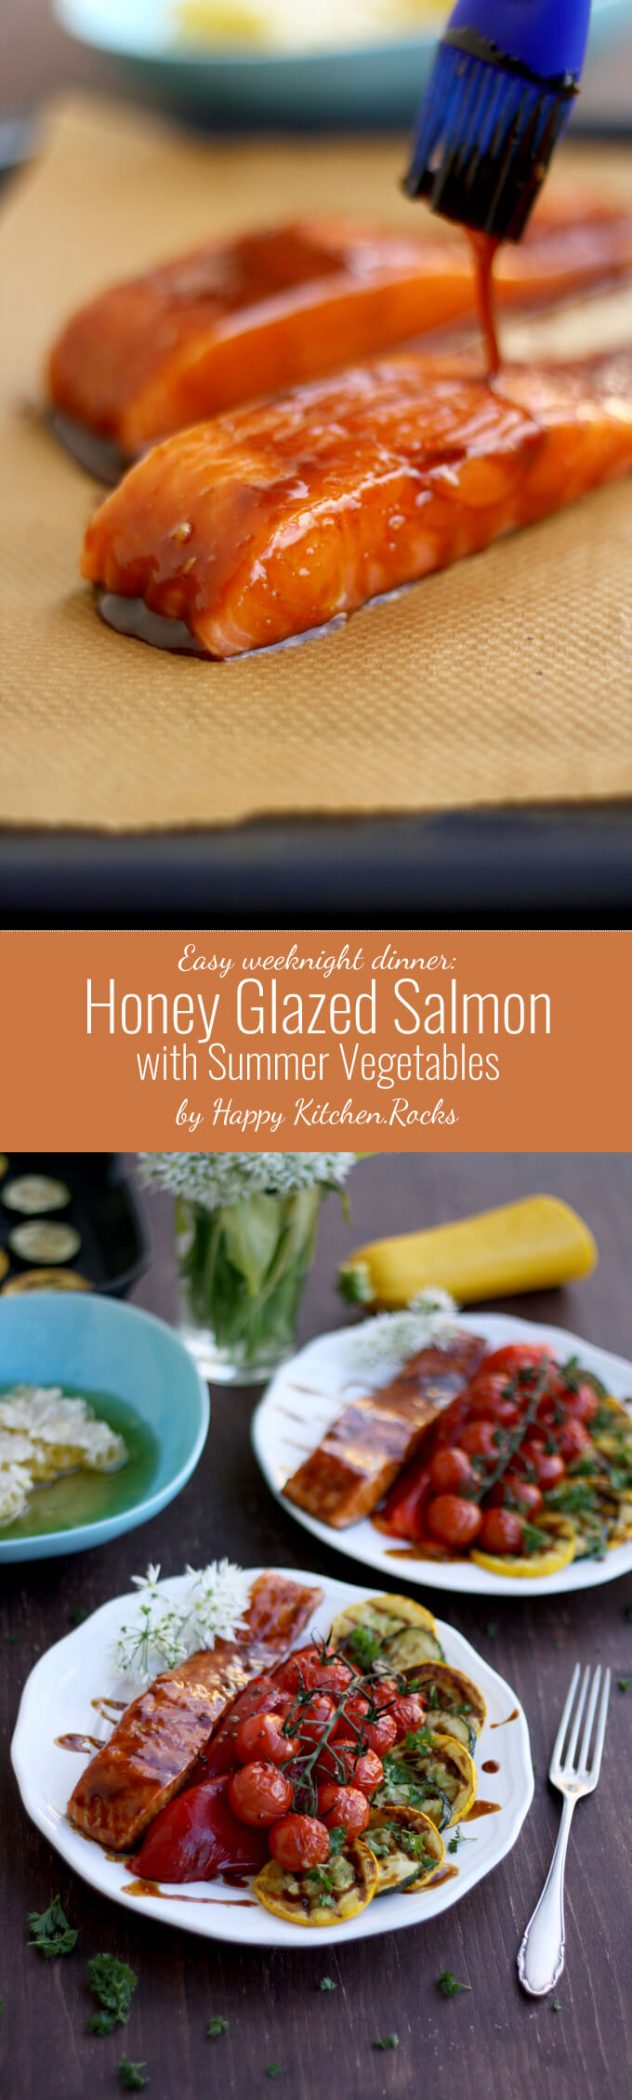 Easy Honey Glazed Salmon with roasted and grilled summer vegetables: Delicious and quick weeknight dinner full of nutrients and summer flavors.